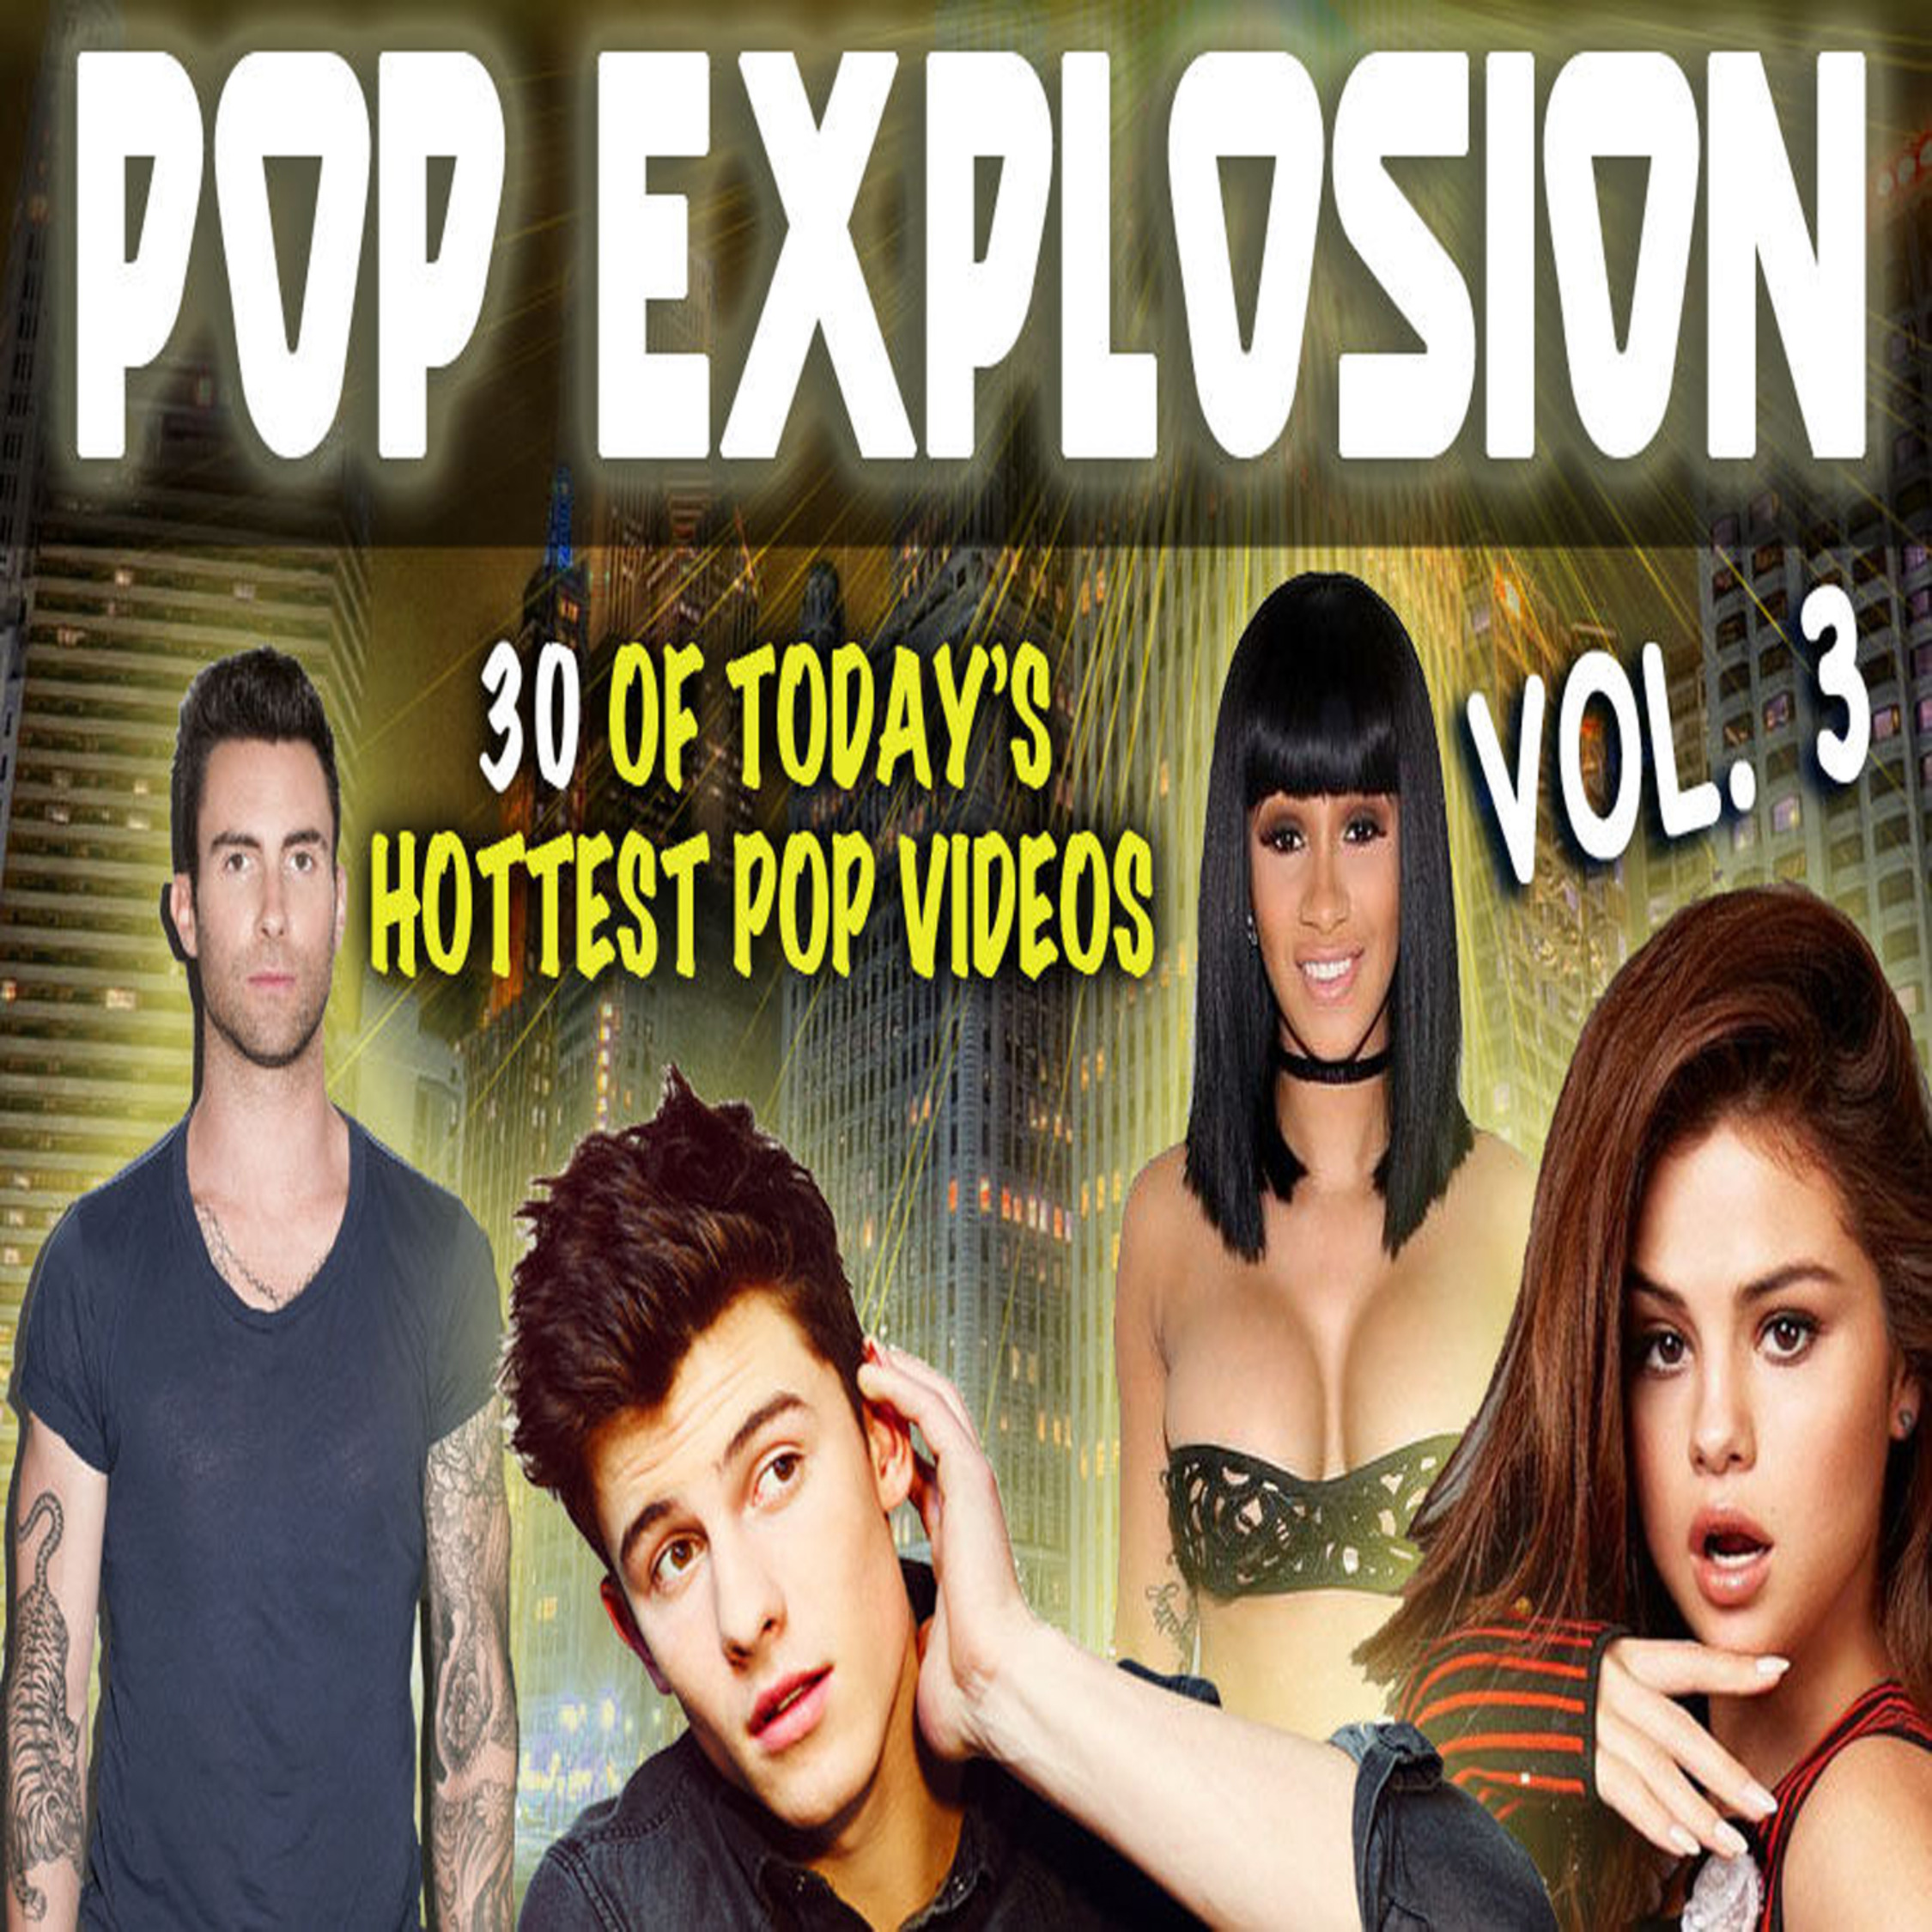 Pop Explosion Vol. 3 - Music Video Collection MP4 Videos